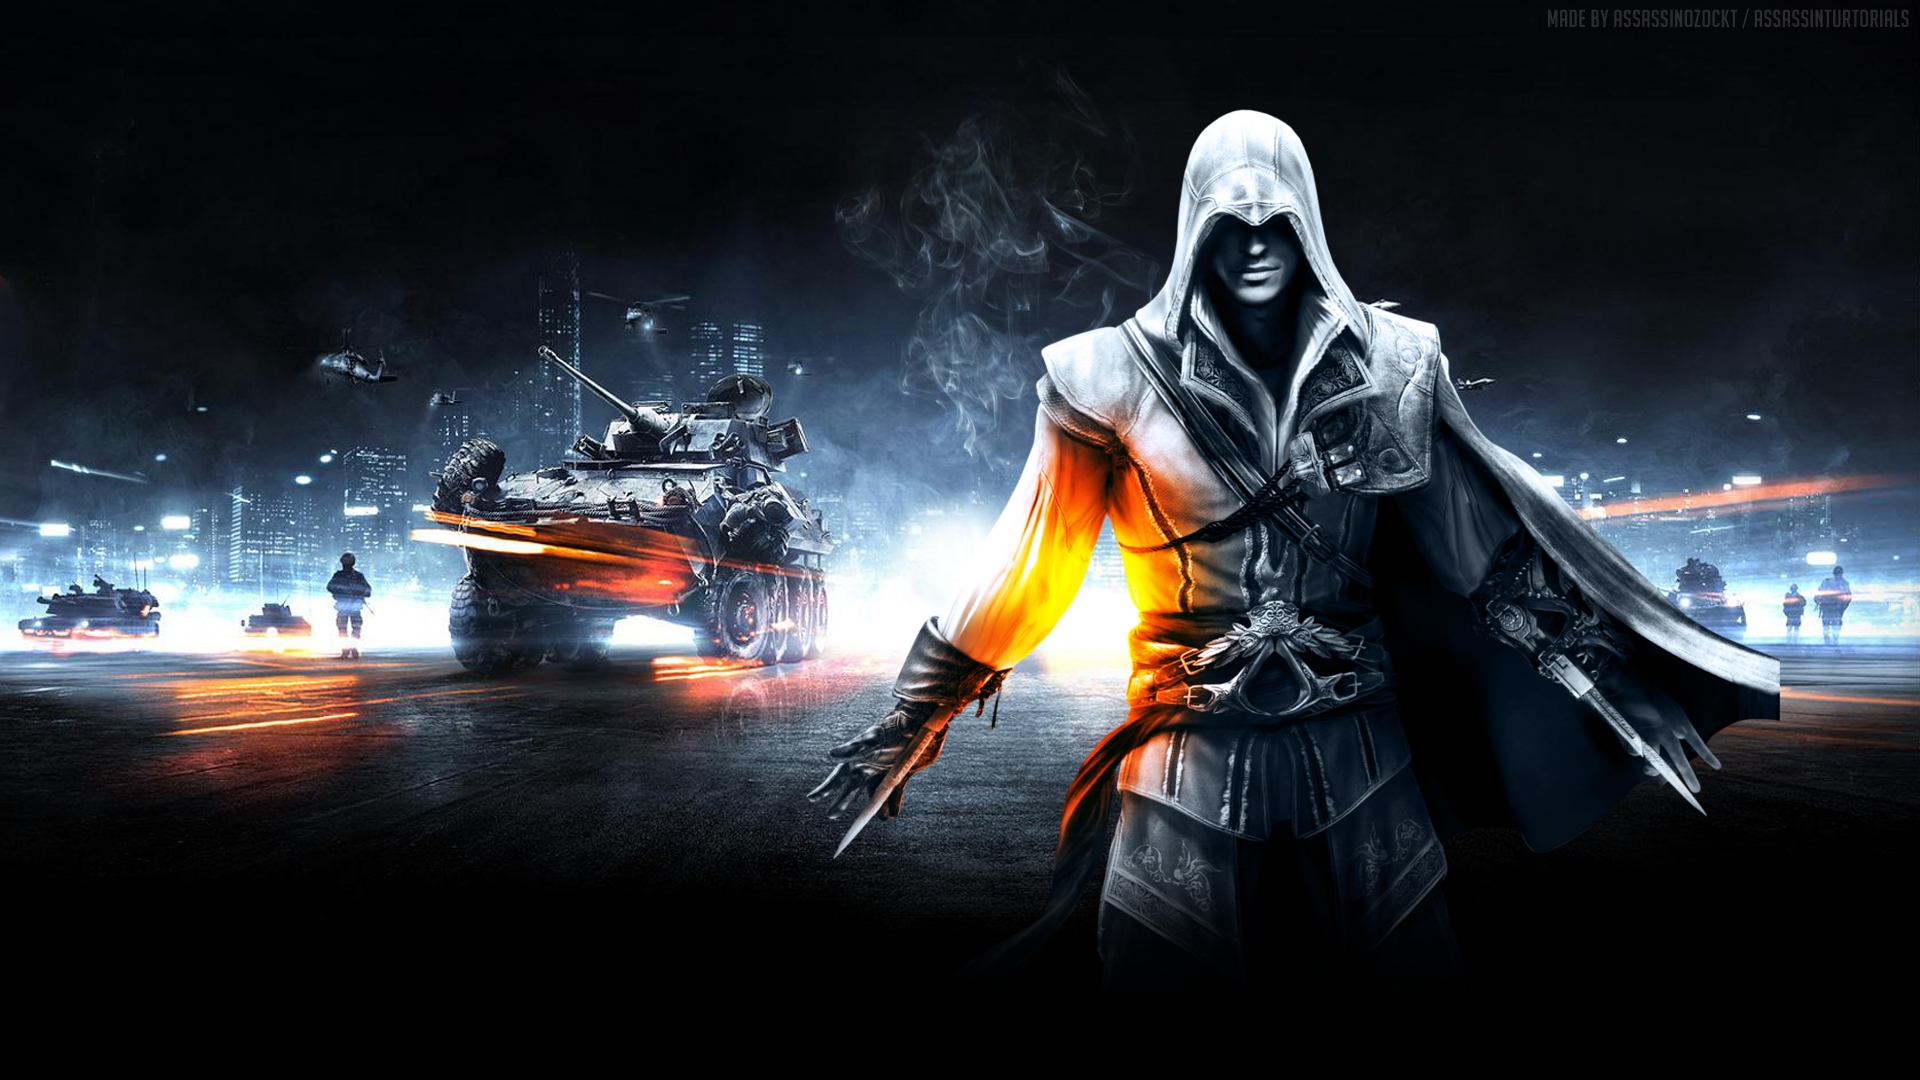 games wallpapers, 44 high quality games wallpapers | full hd games